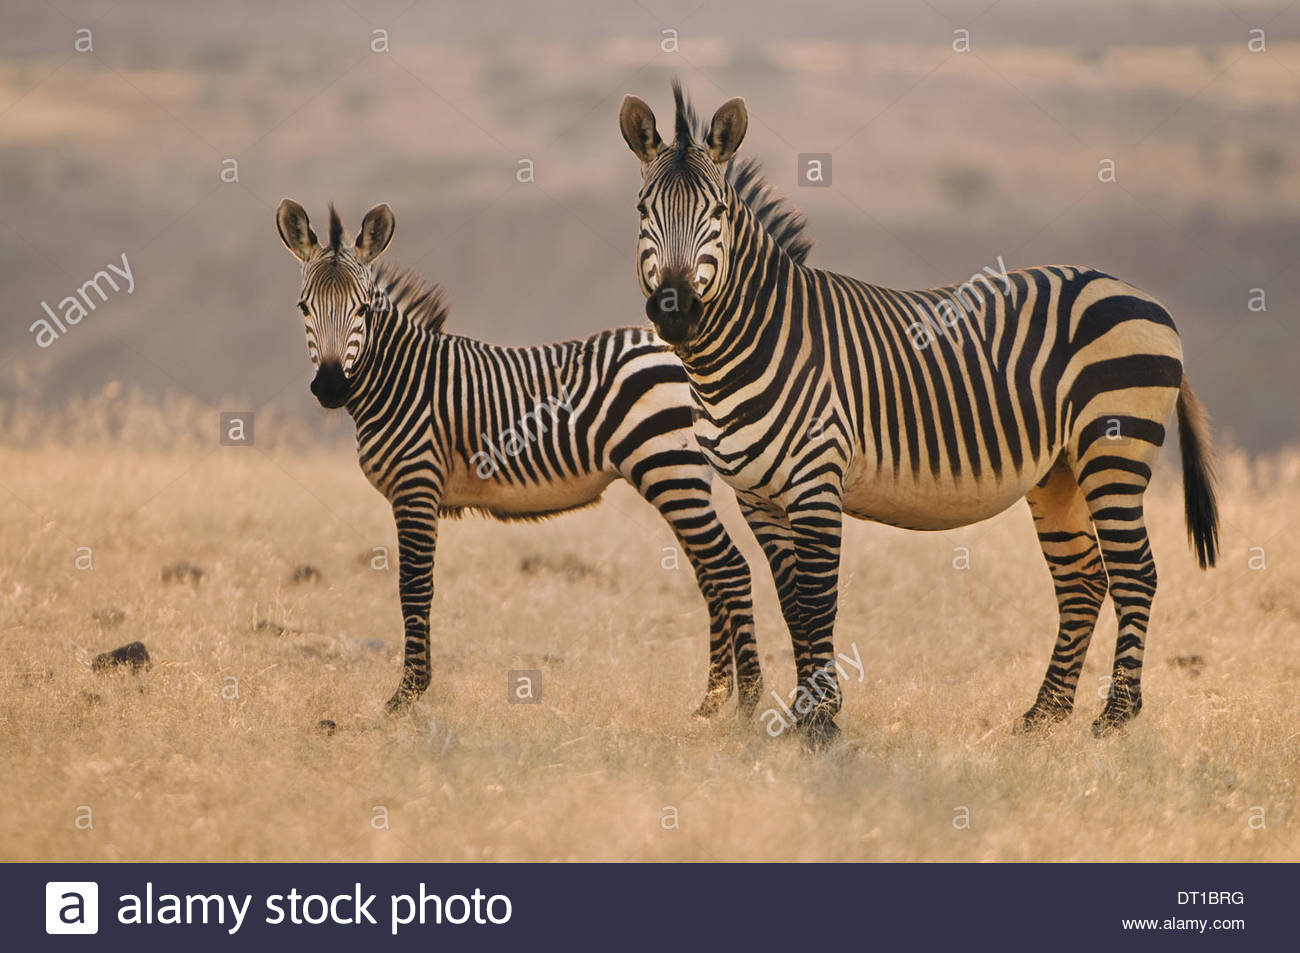 Torra Conservancy Damaraland Namibia Two mountain zebras Equus zebra on plains Namibia Stock Photo